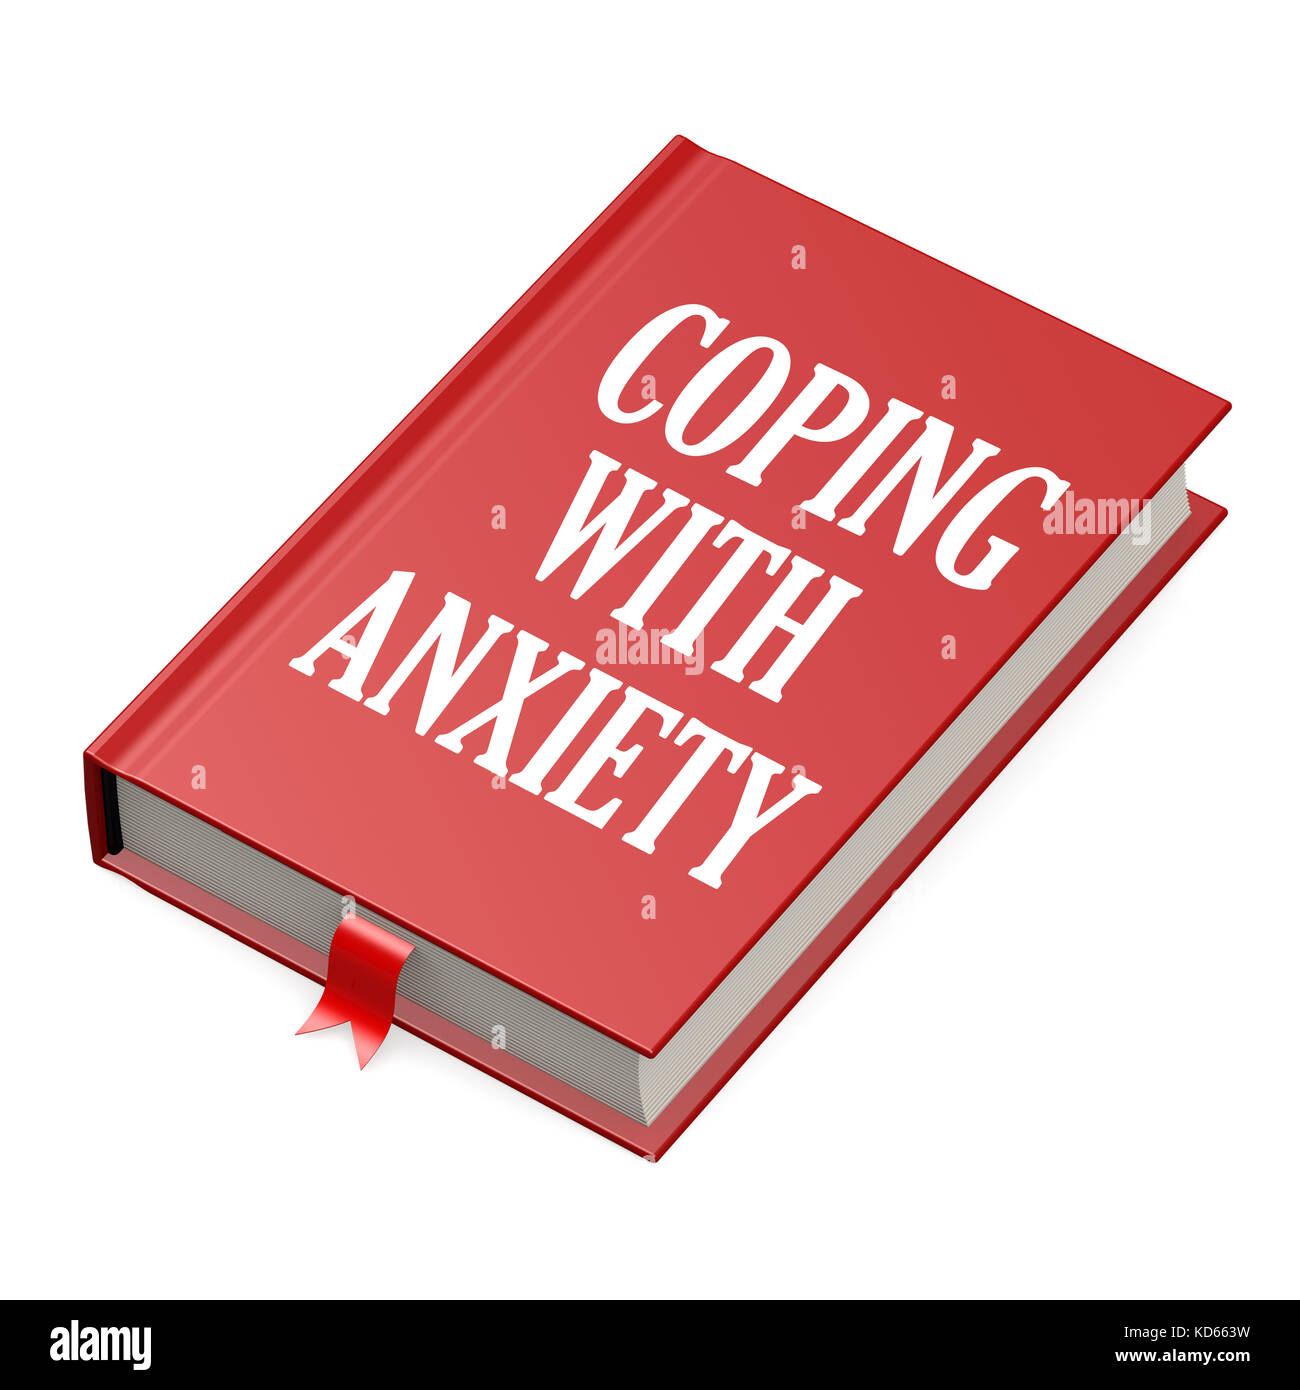 Book with an anxiety concept title title image with hi-res rendered artwork that could be used for any graphic design. - Stock Image